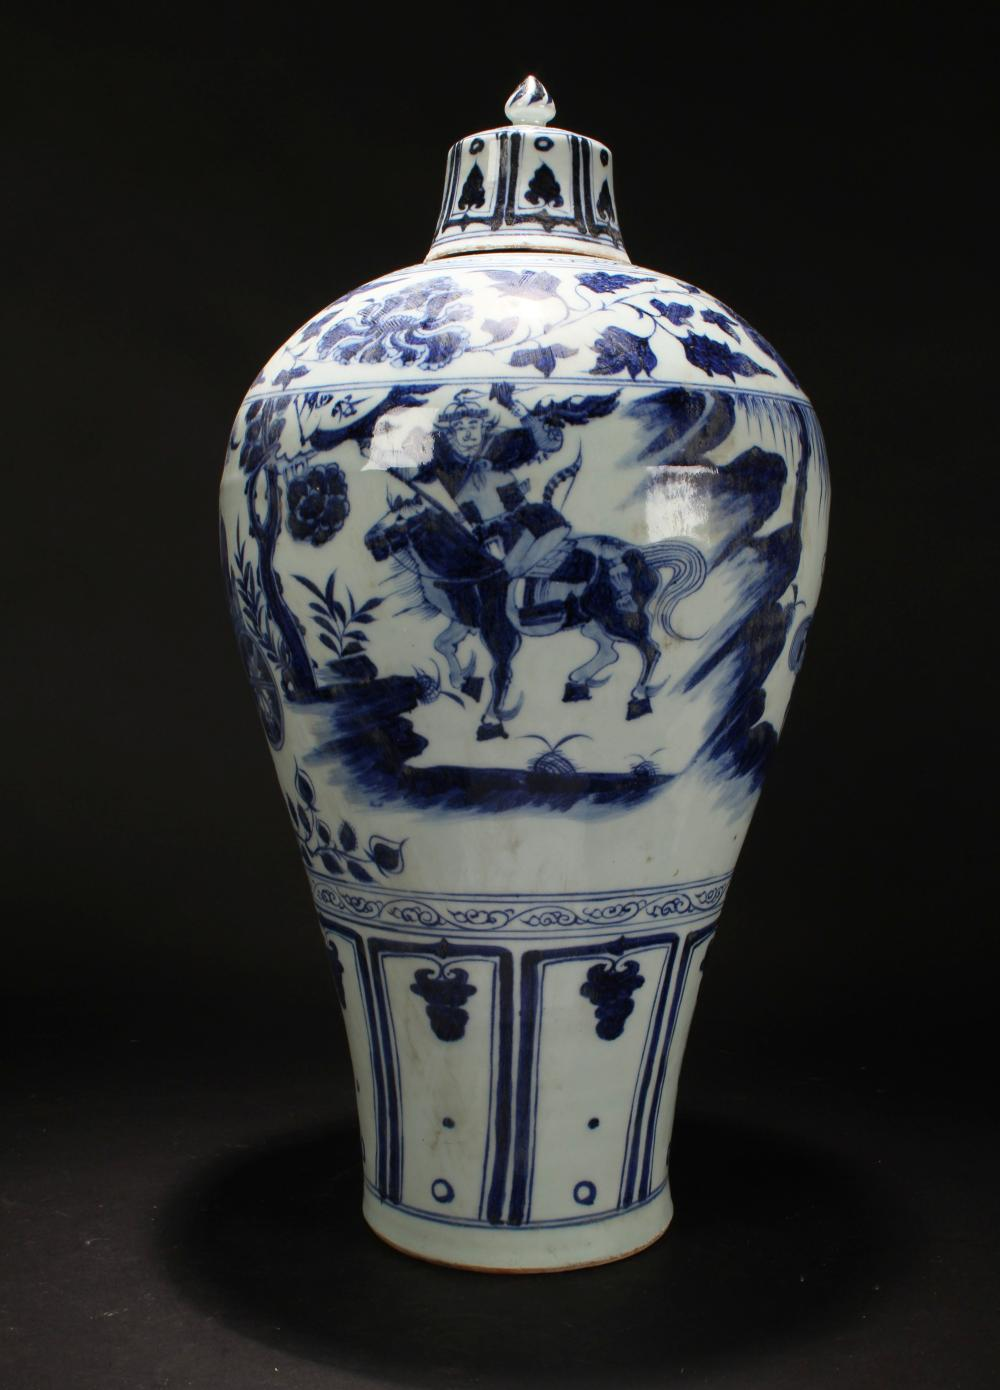 A Chinese Story-telling Blue and White Porcelain Vase Display